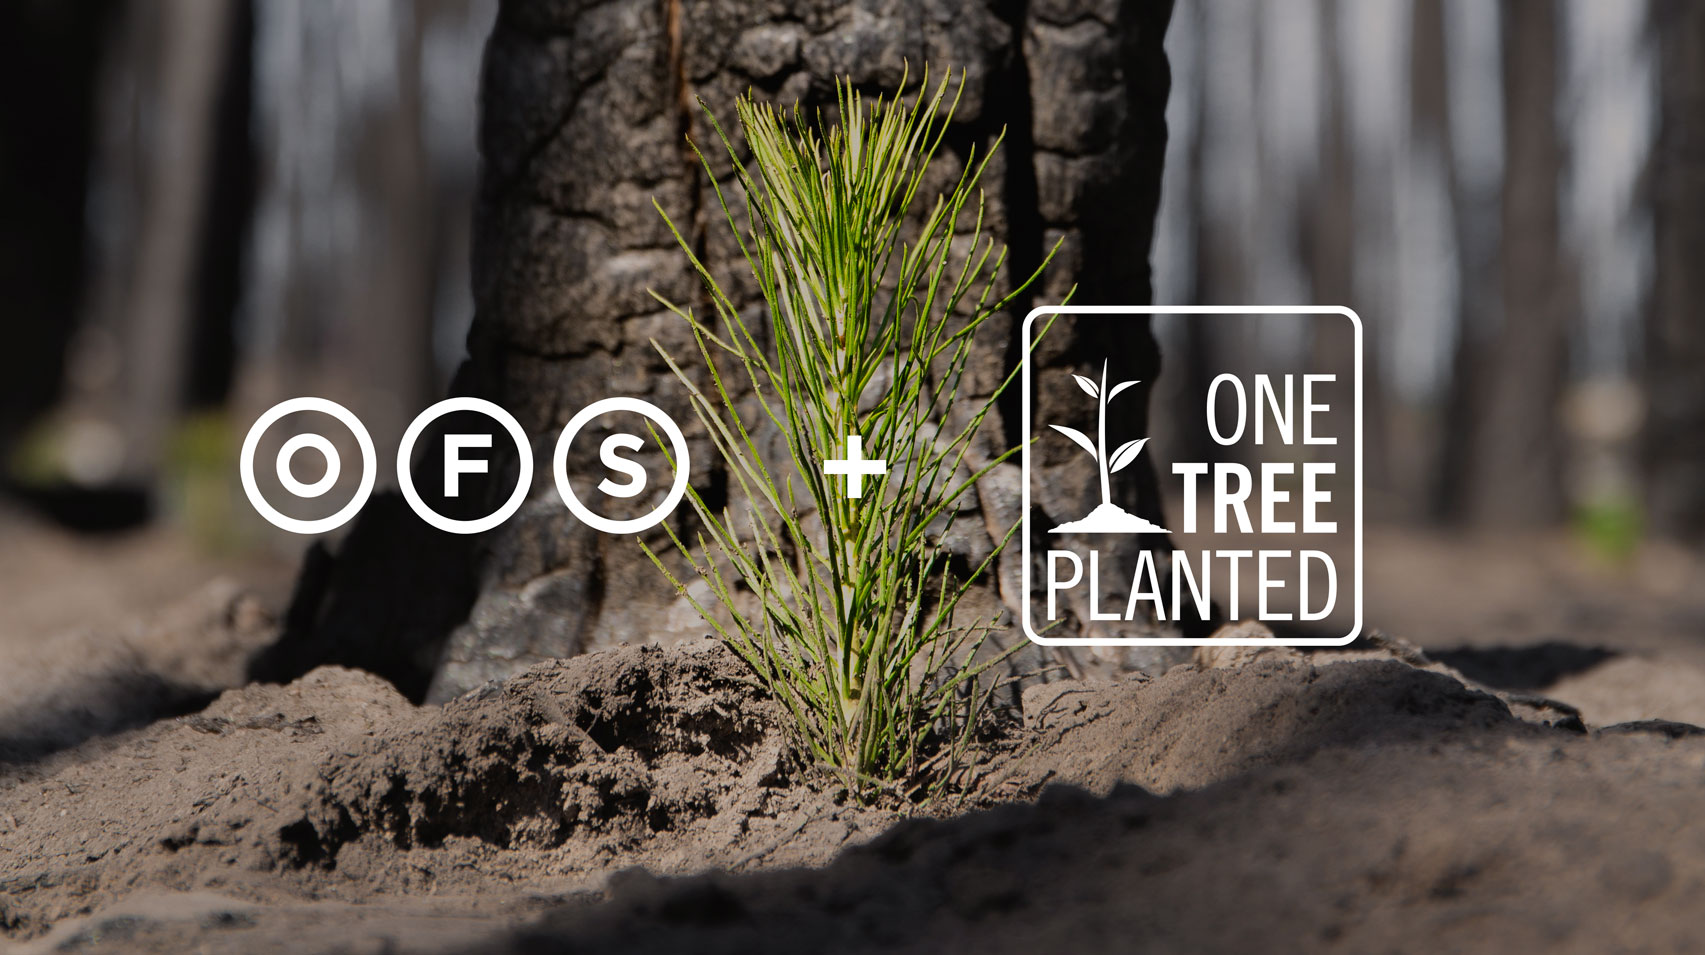 OFS and One Tree Planted